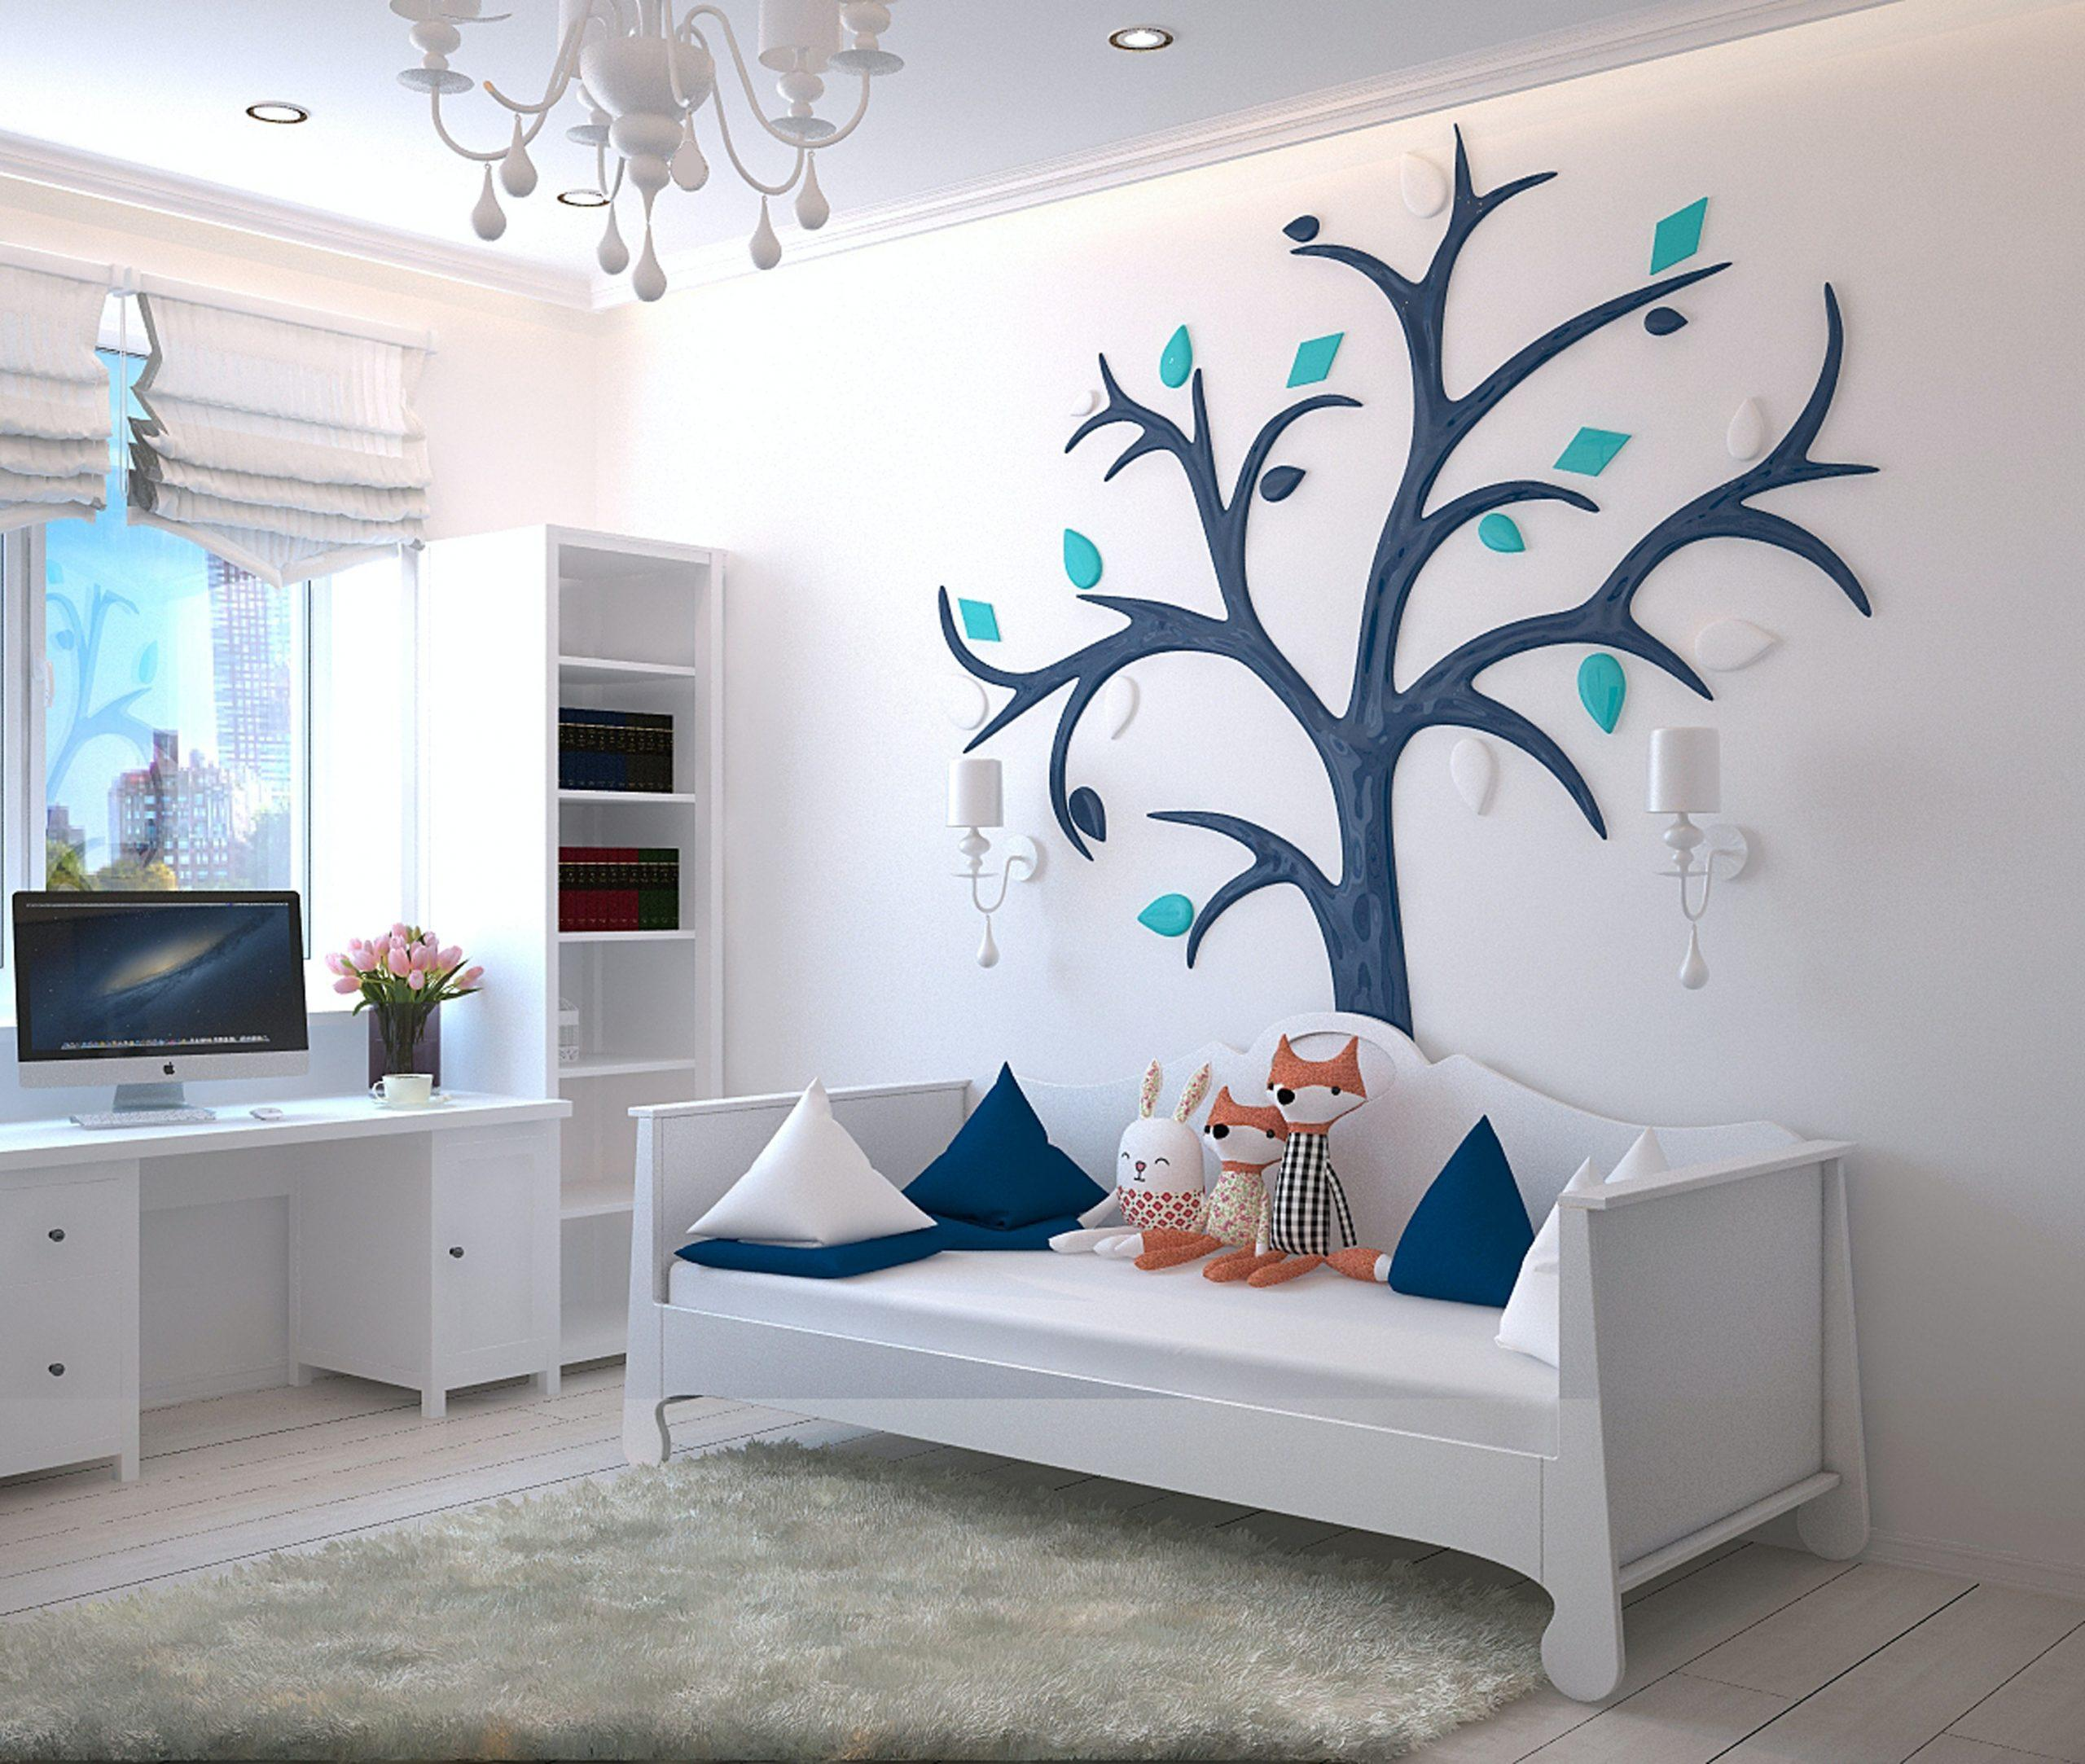 https://mamabee.com/kid-proof-decor-ideas-for-the-modern-home/